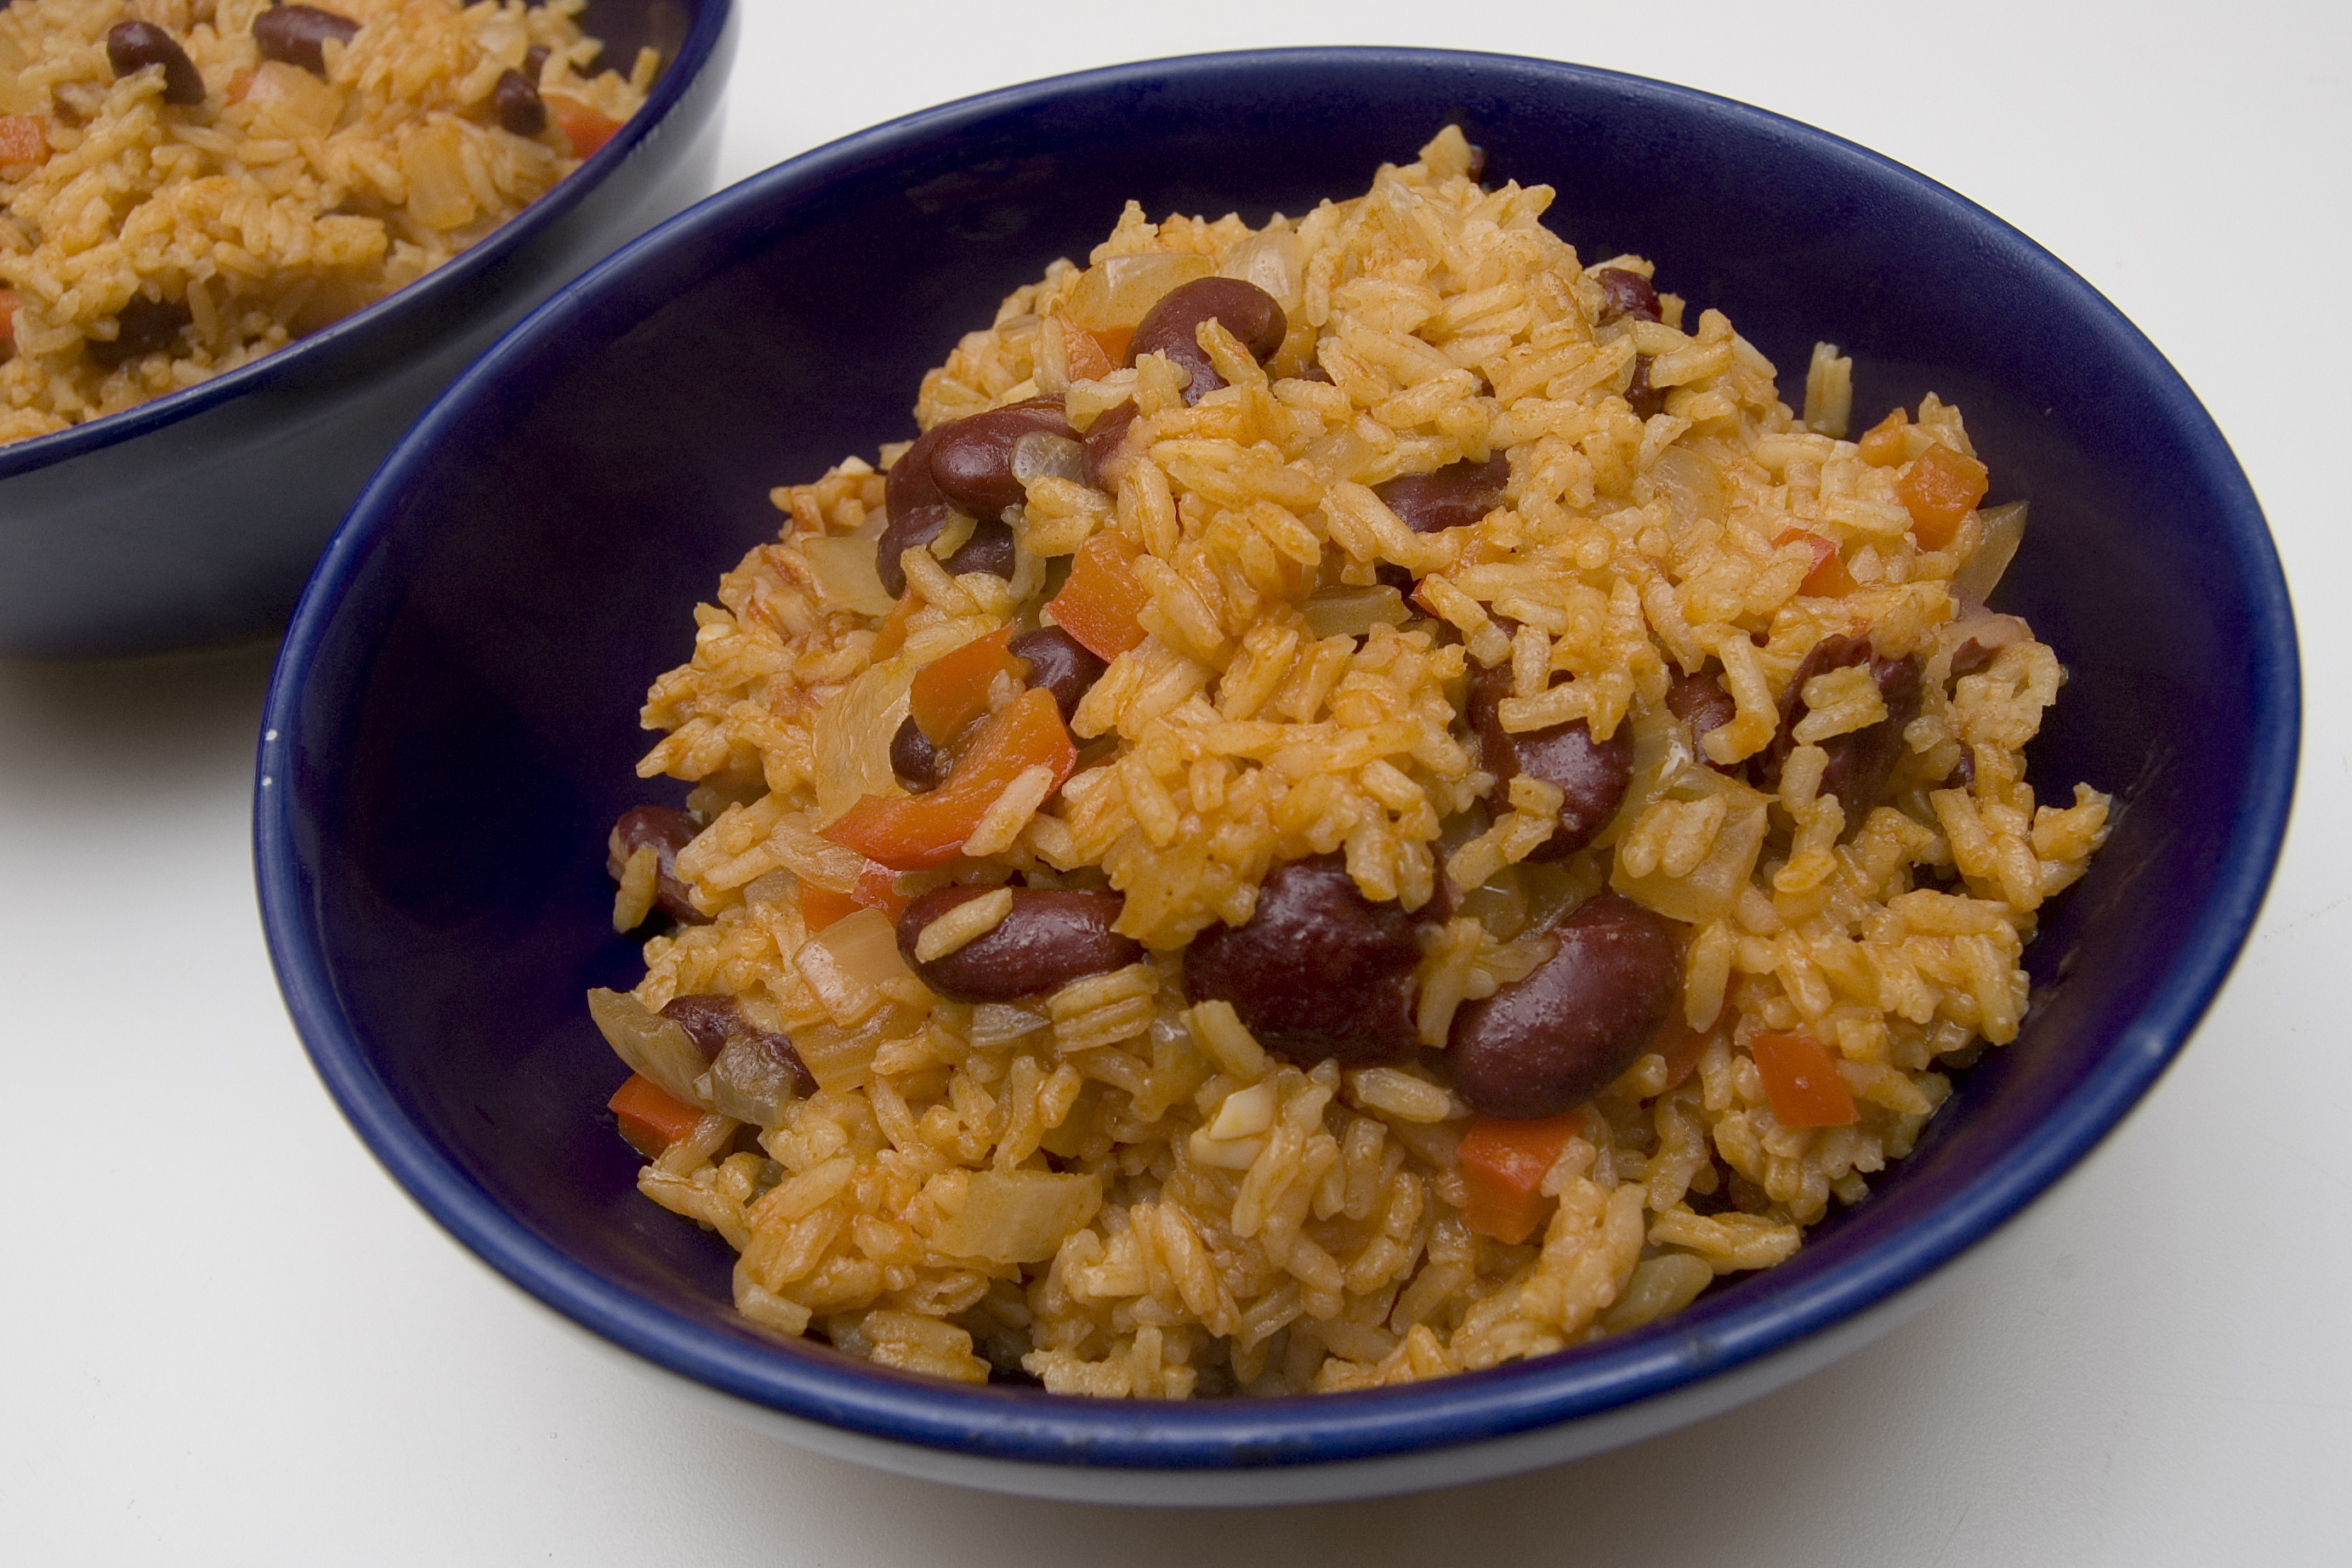 File:Red beans and rice.jpg - Wikimedia Commons